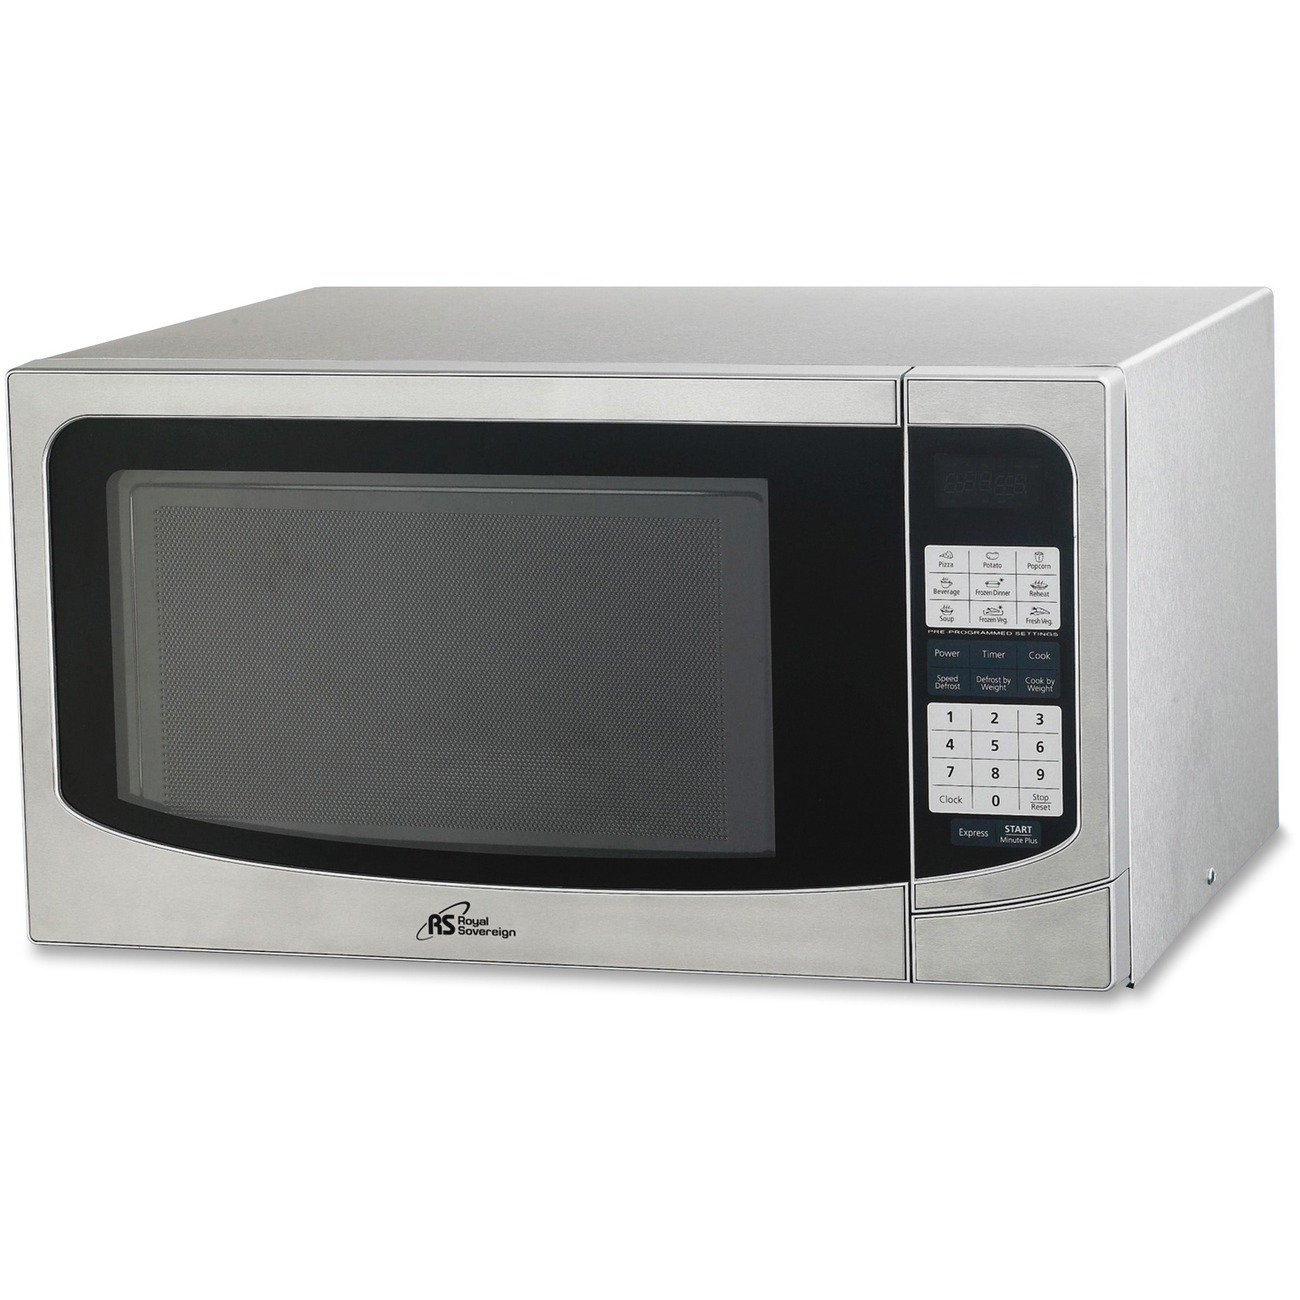 Countertop Microwave Offers Sd And Convenience When Reheating Or Cooking Meals Snacks 10 Levels Provide A Large Variety Of Options